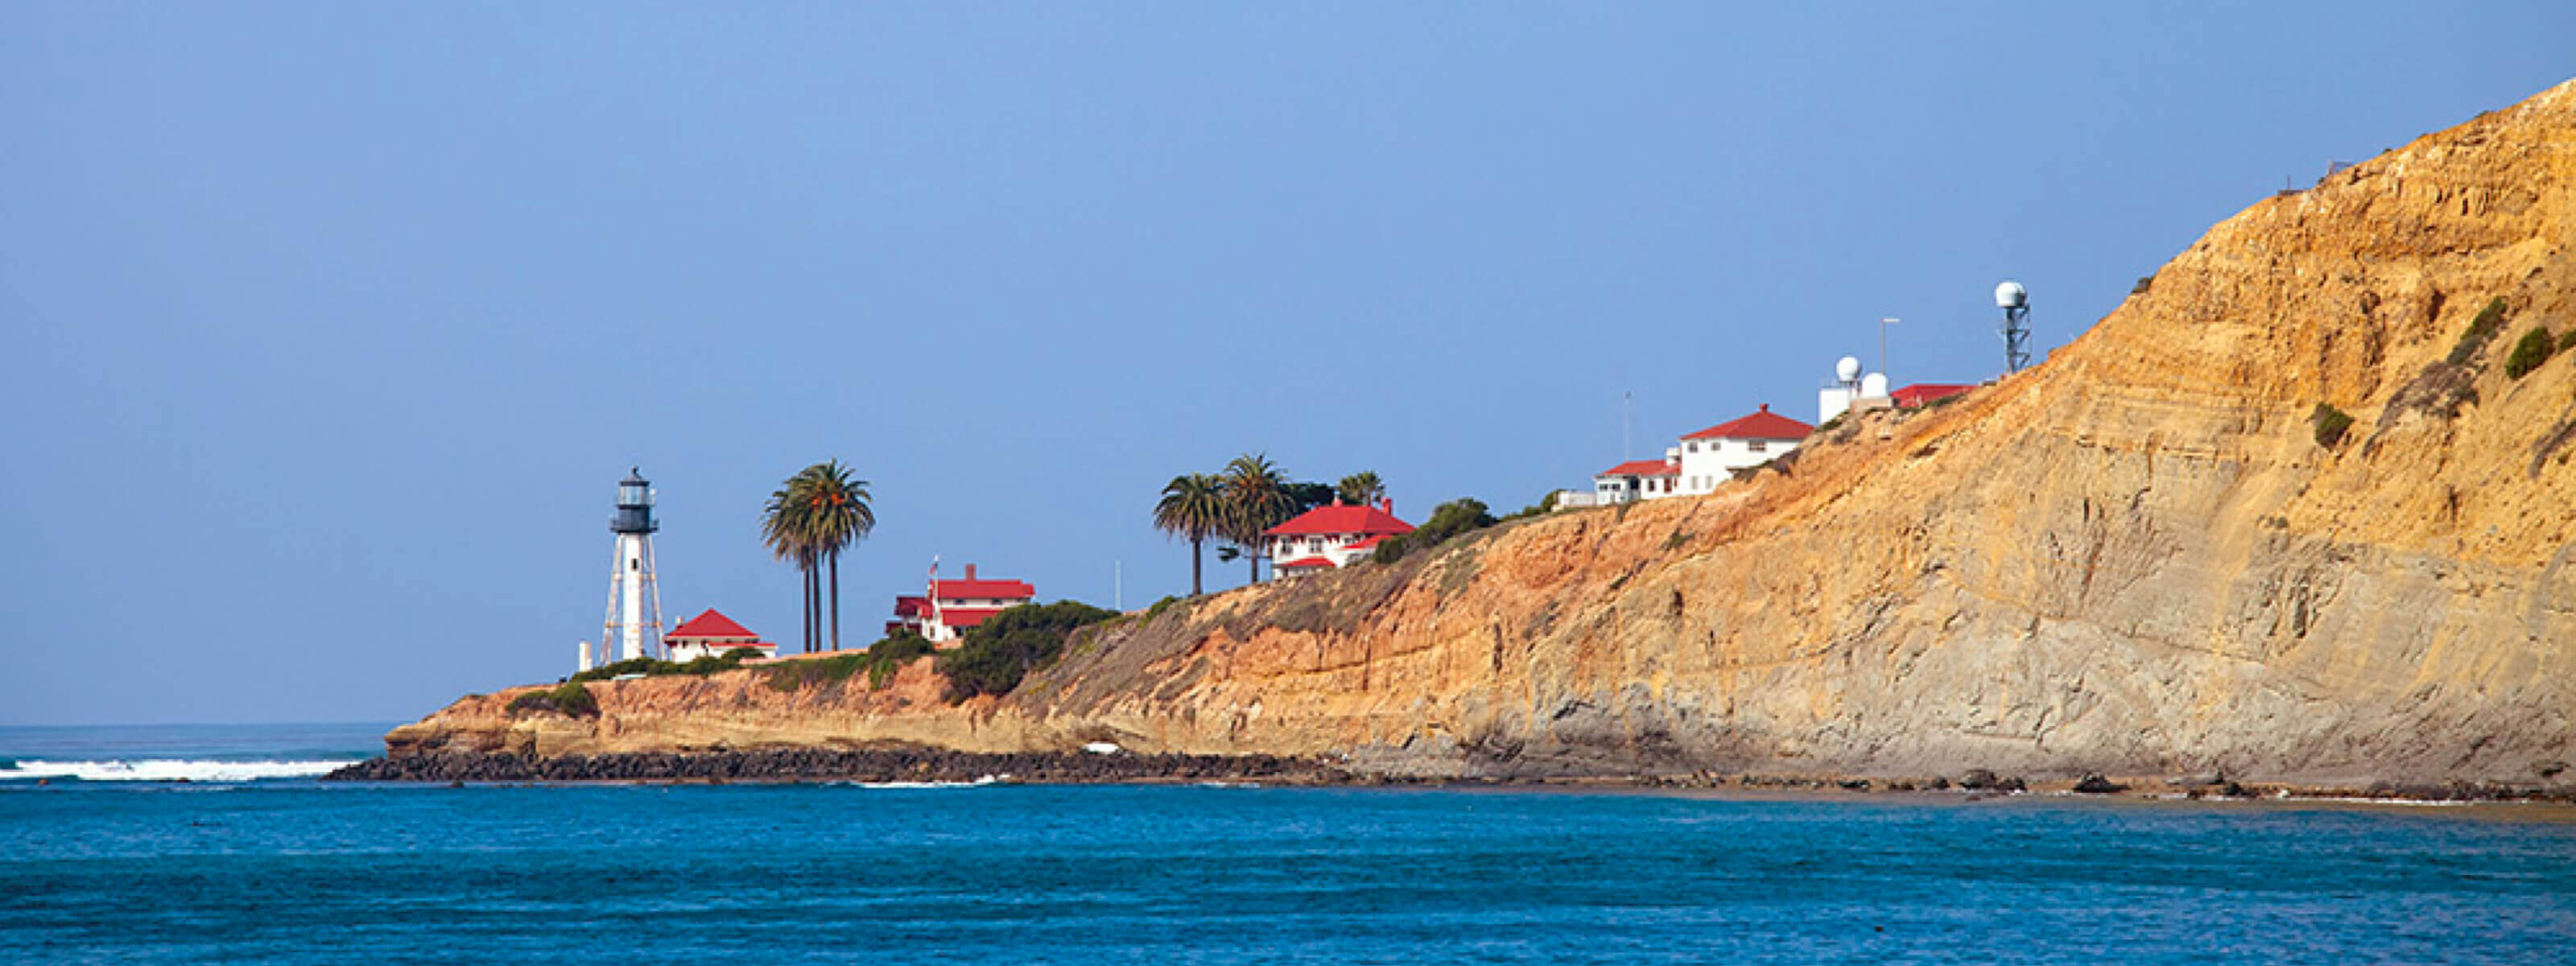 YachtLife's top Yachting Activities in San Diego - Point Loma